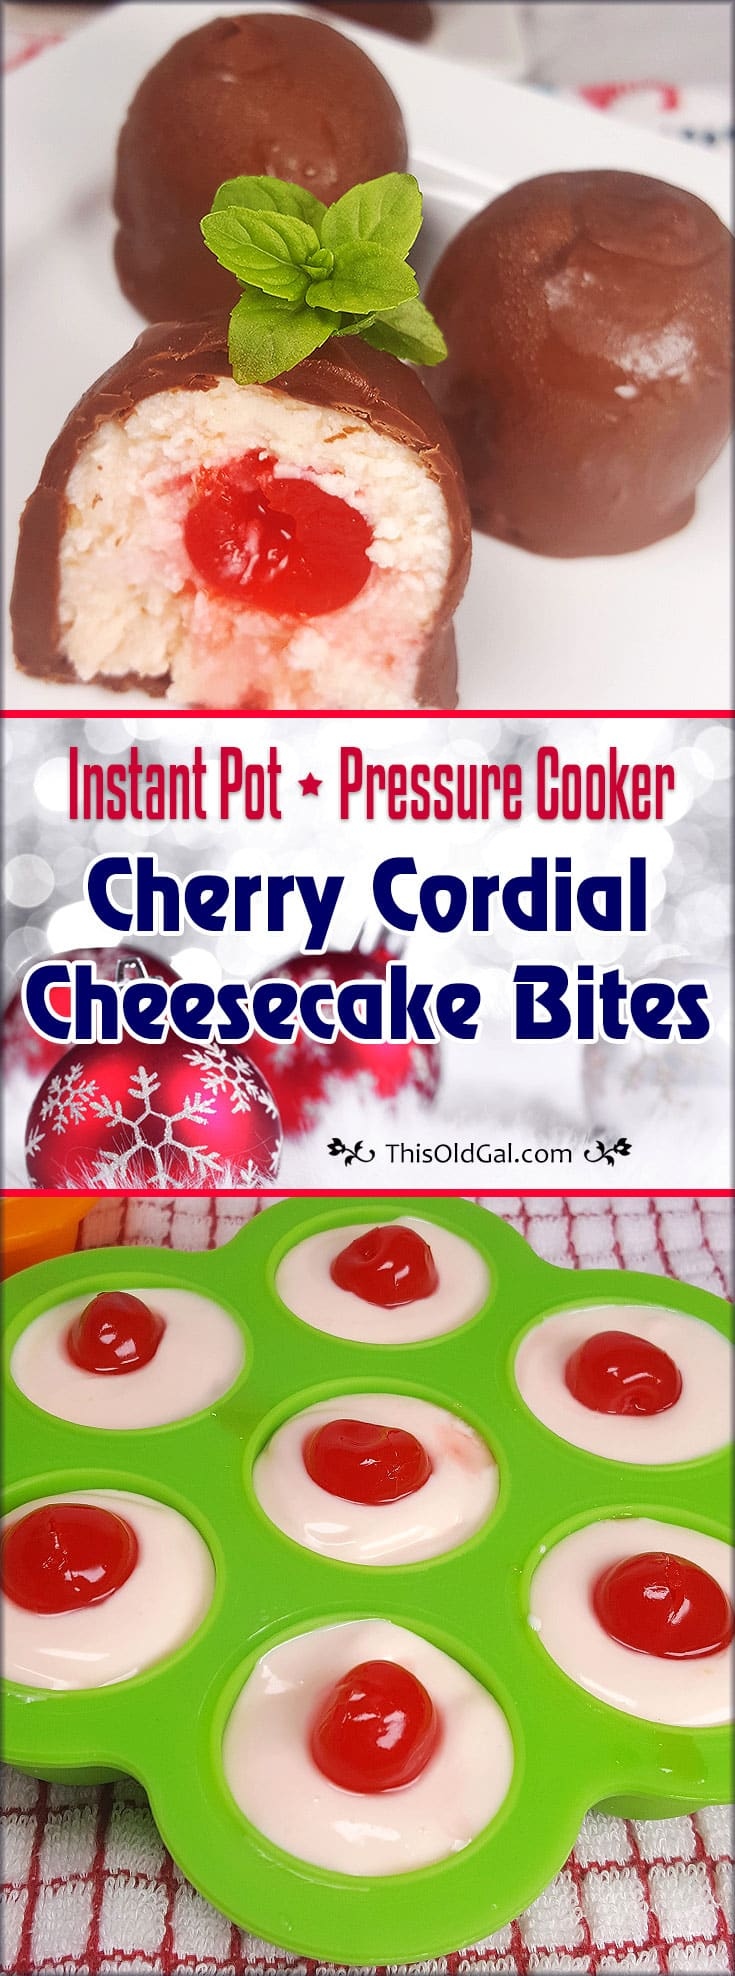 Pressure Cooker Cherry Cordial Cheesecake Bites